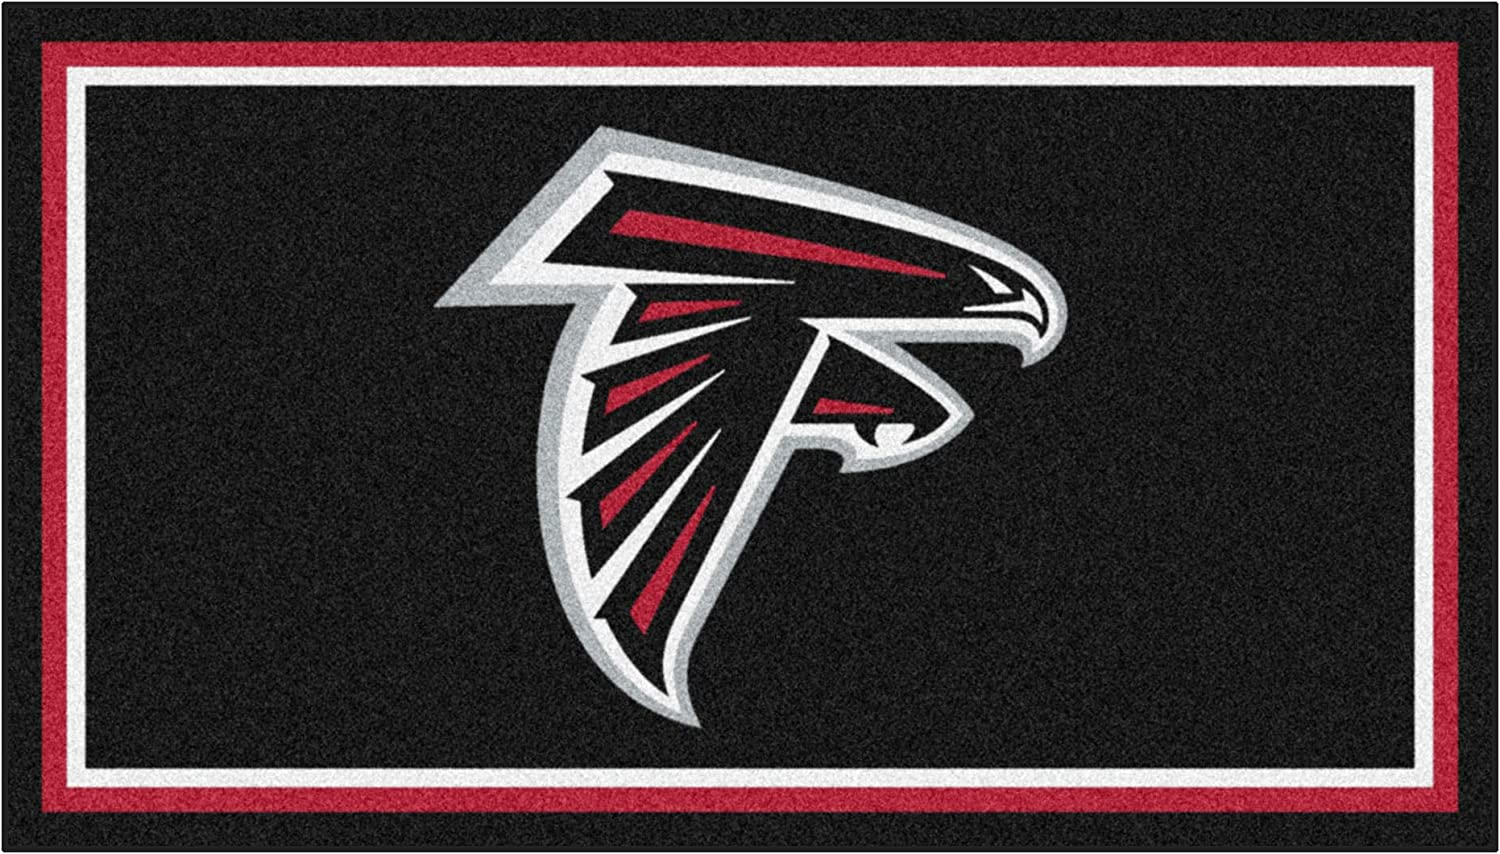 FANMATS NFL Unisex-Adult 3 Max 63% OFF Ft. Rug 5 Area x Inexpensive